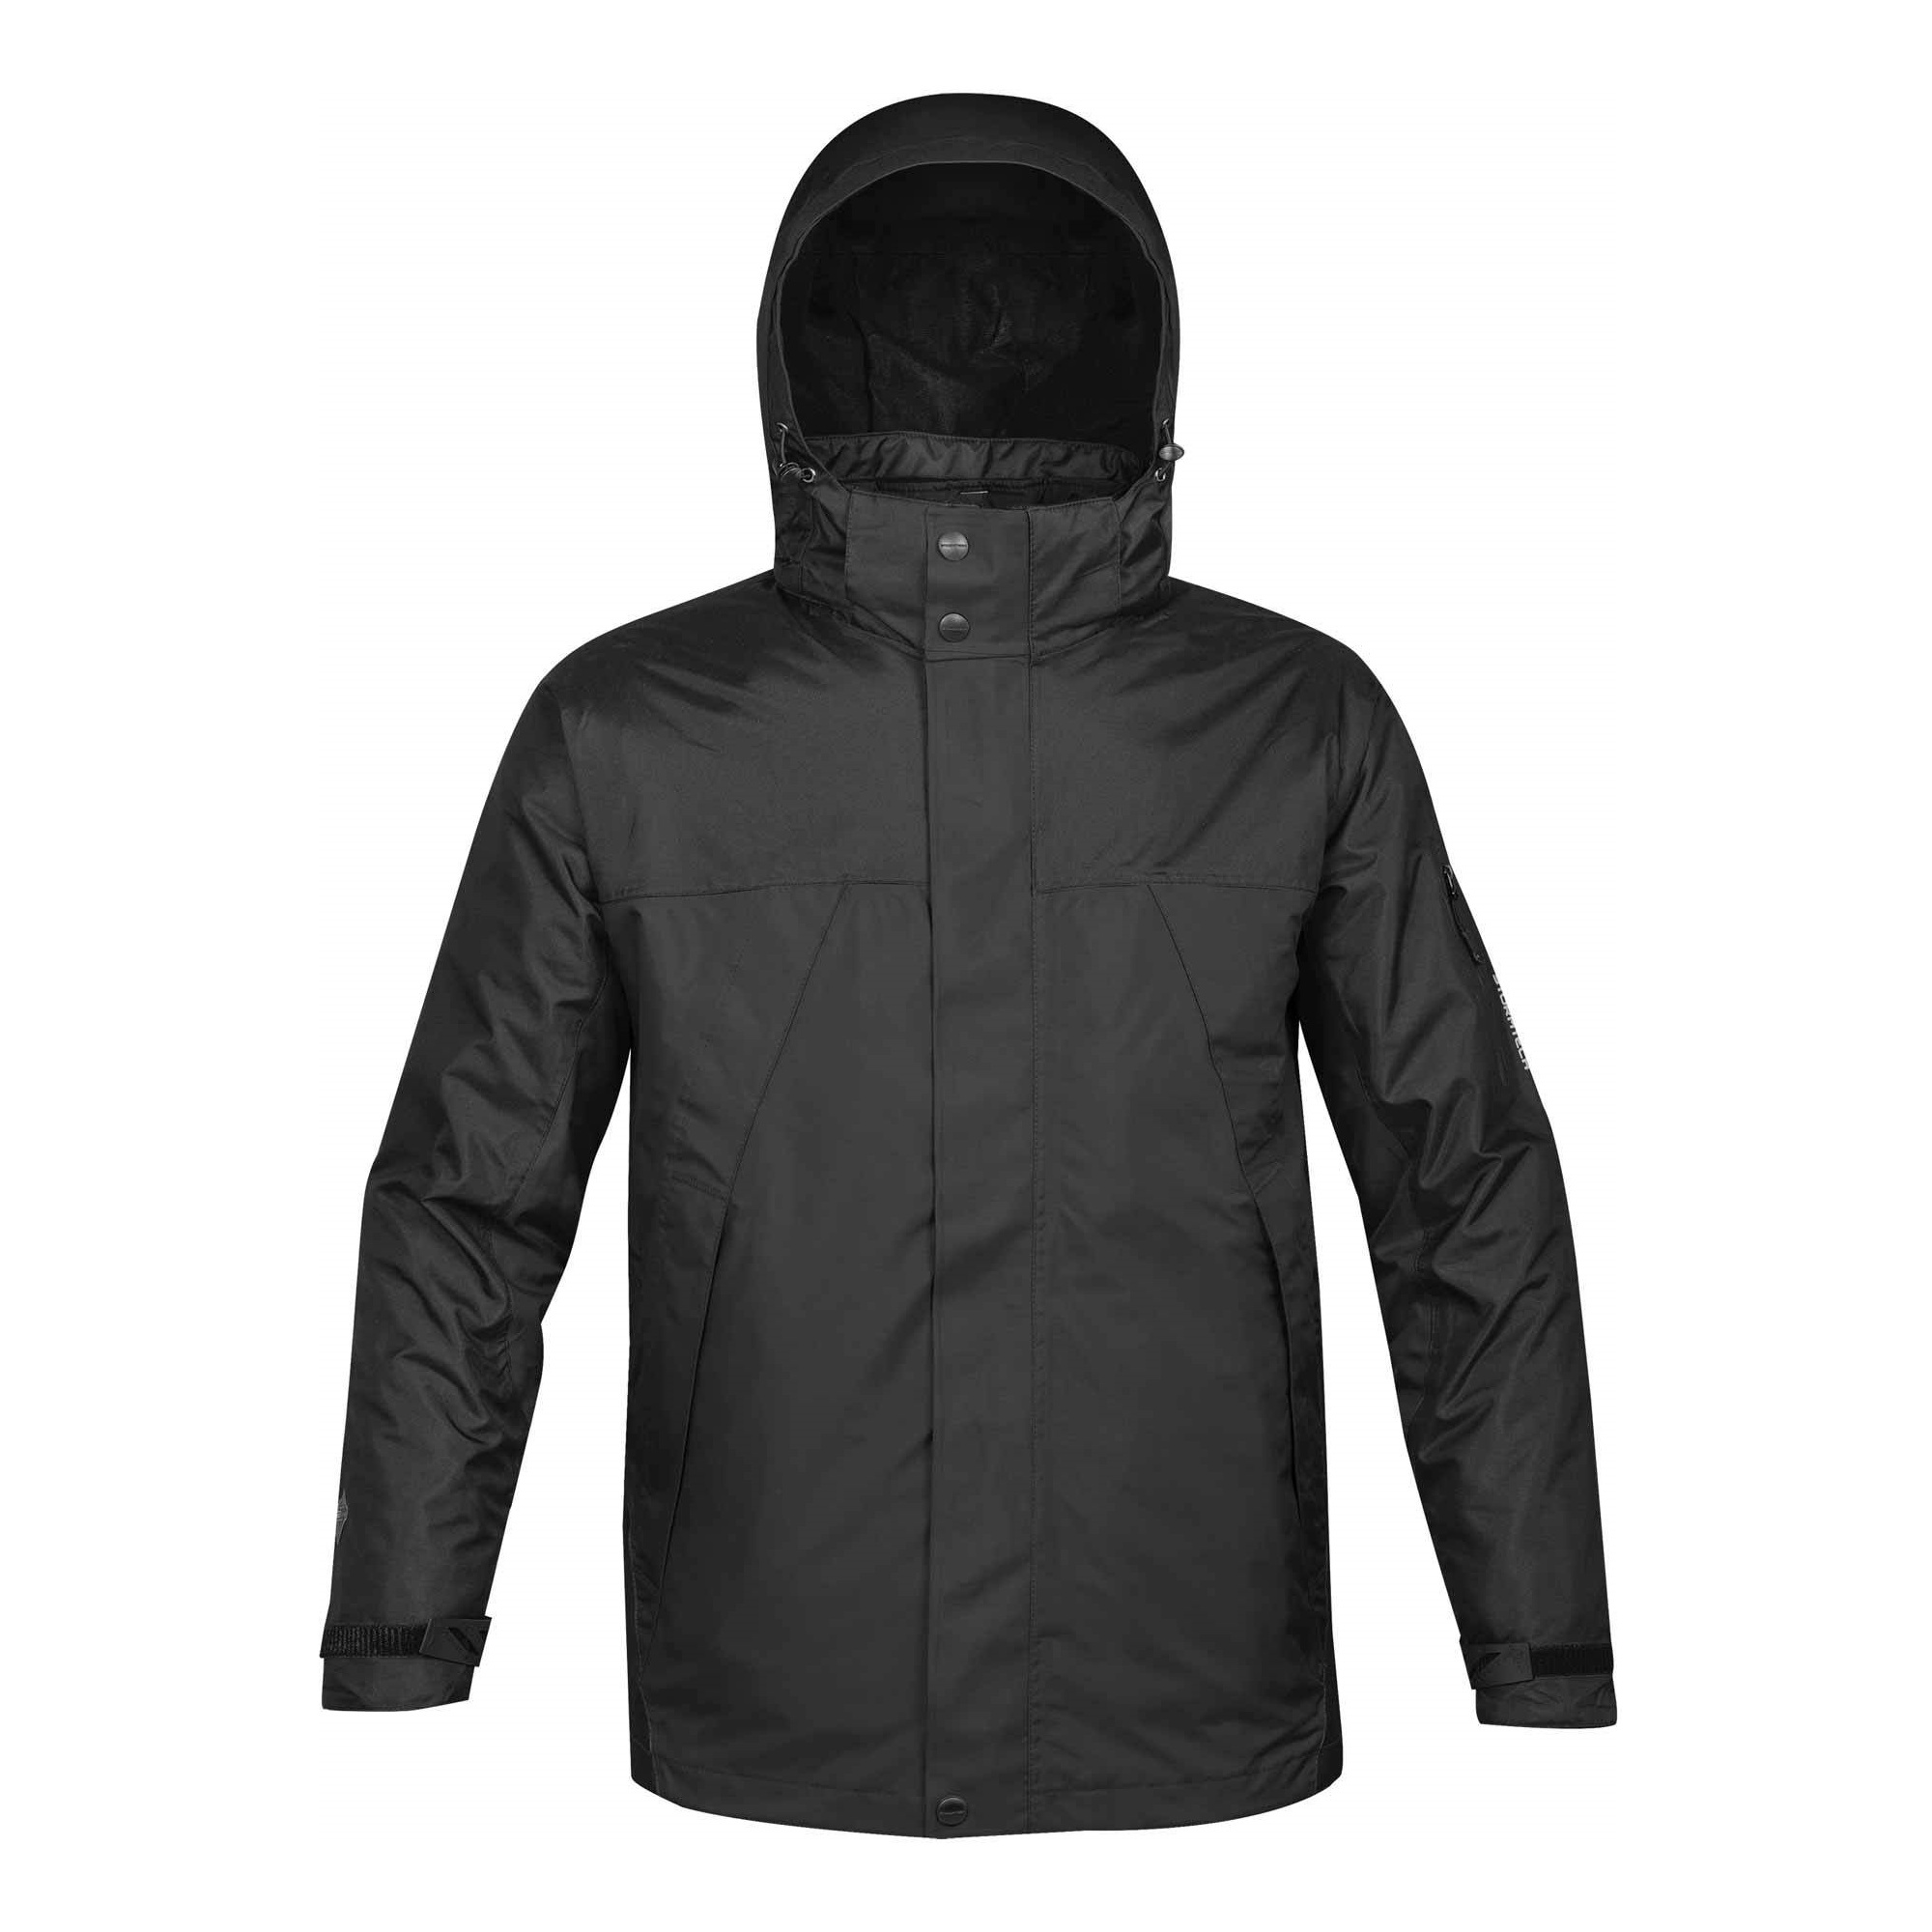 Stormtech Mens Fusion 5 In 1 System Parka Hooded Waterproof Breathable Jacket (3XL) (Black/Black)